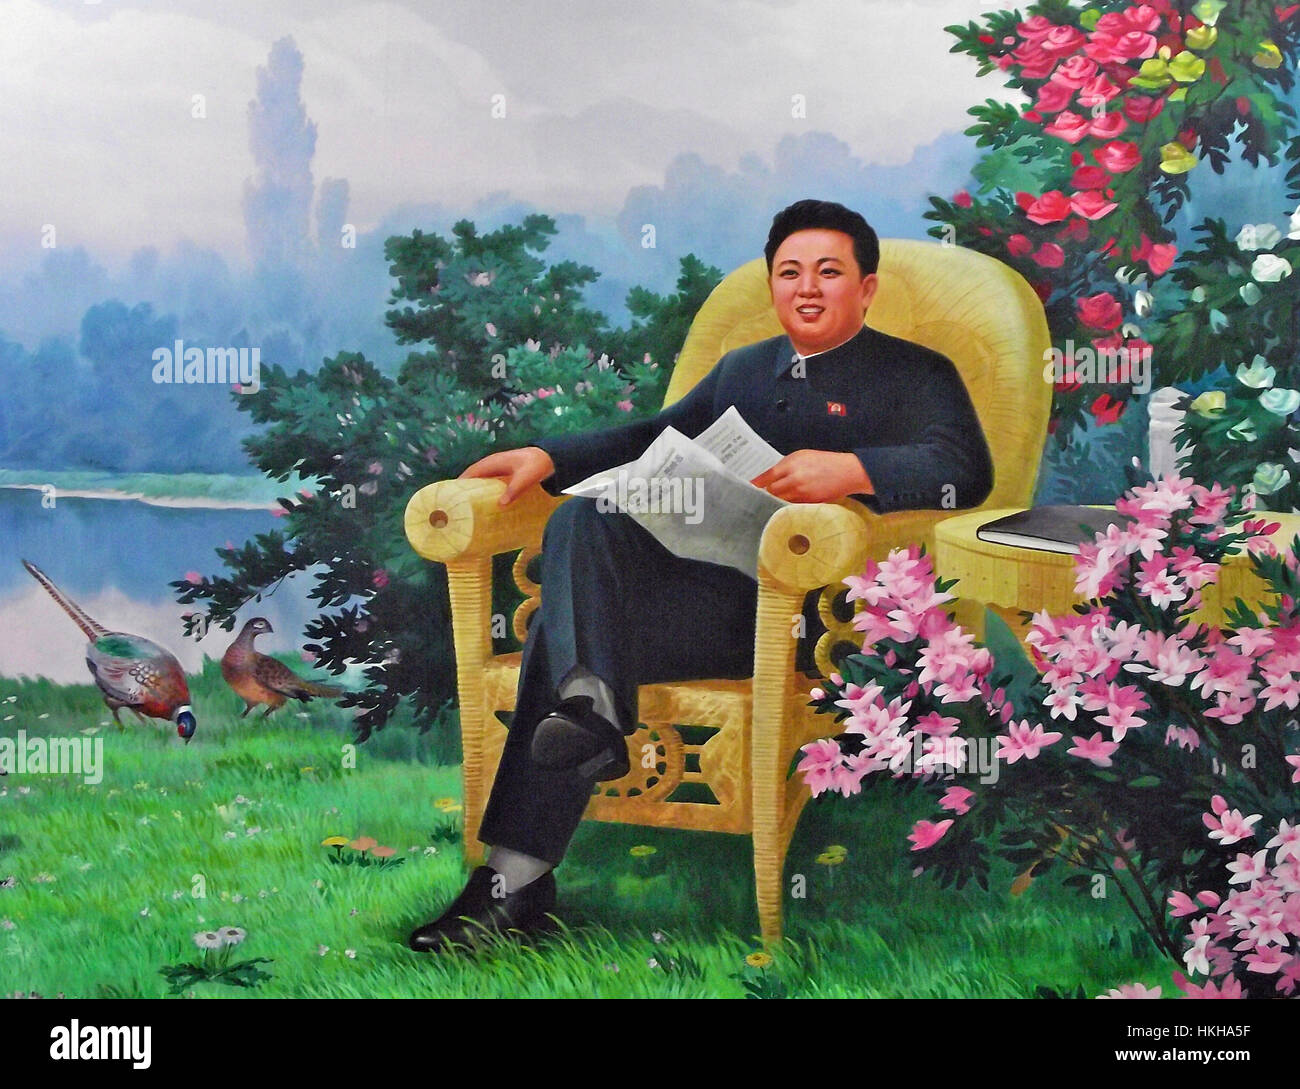 KIM JONG-il in a North Korean propaganda painting about 2008 - Stock Image